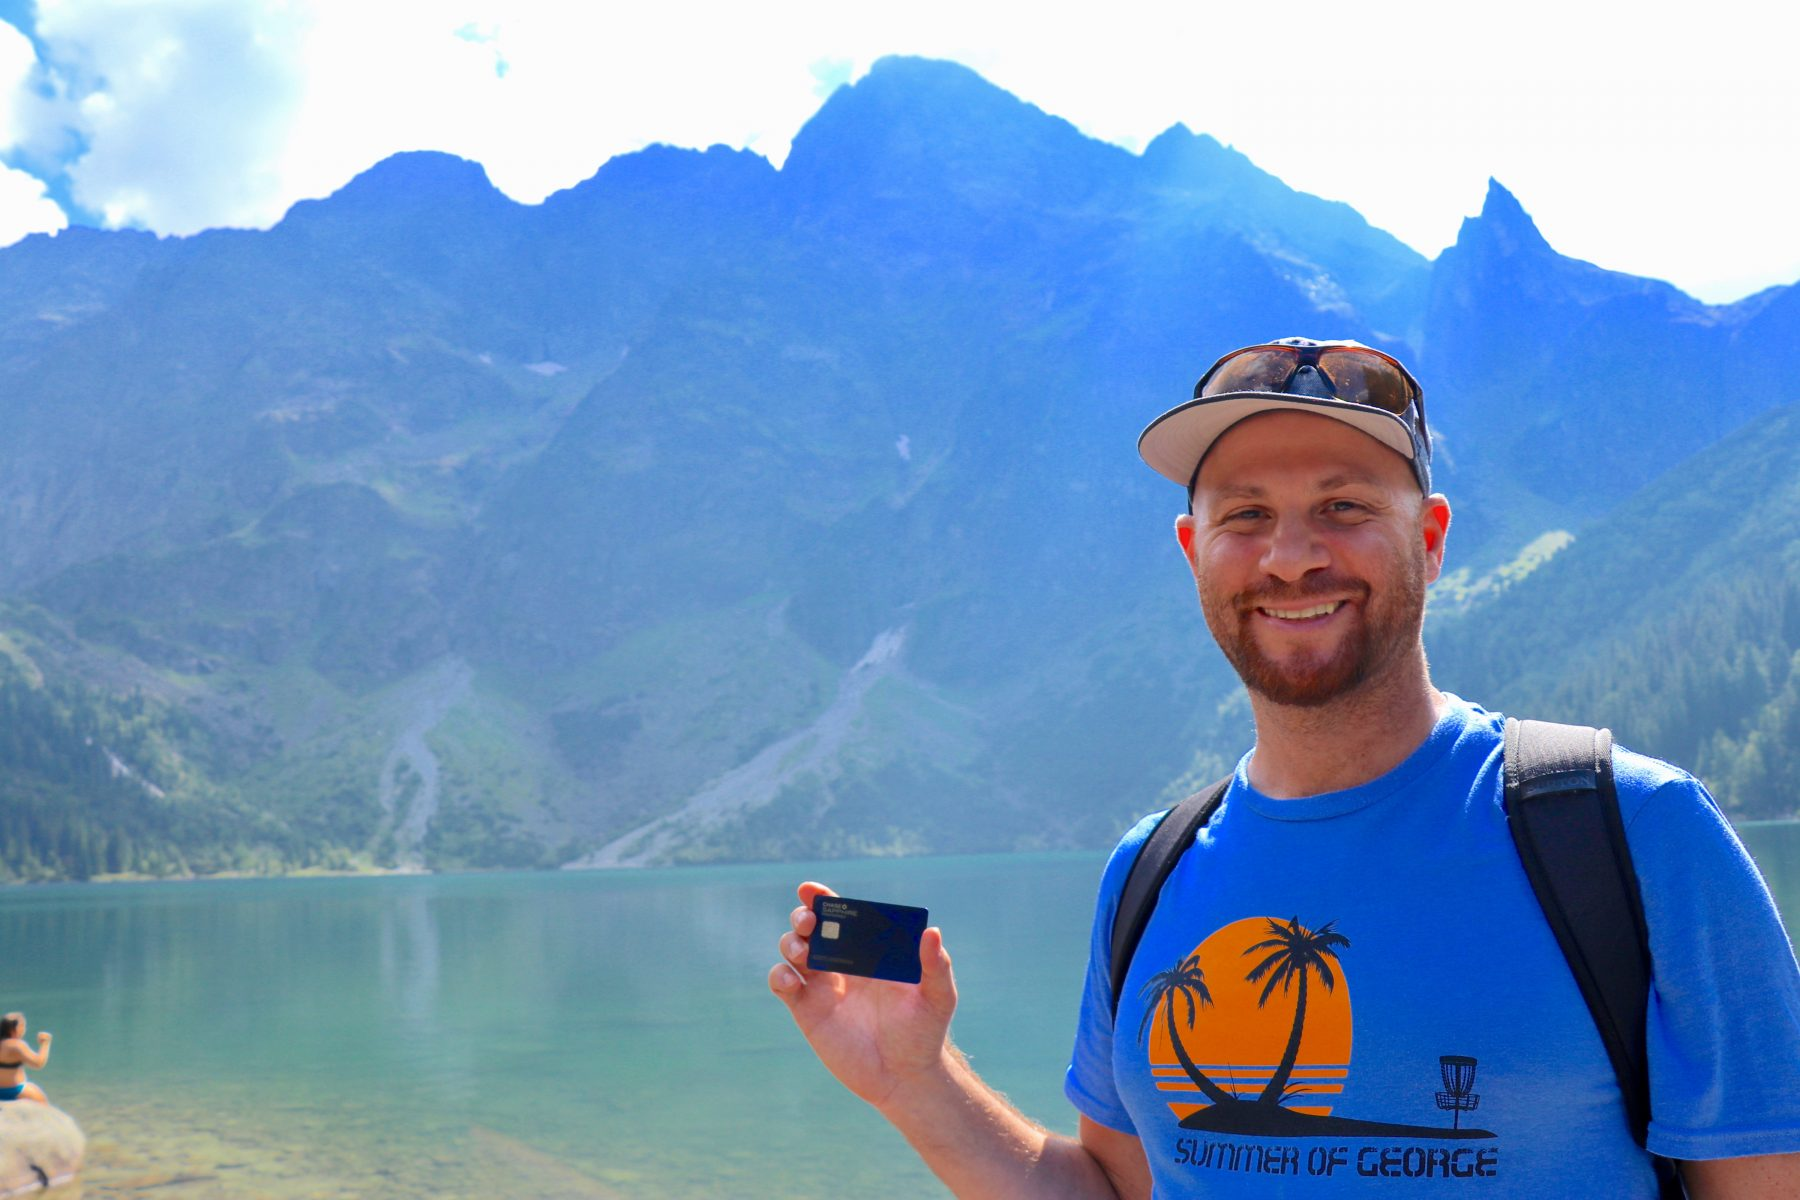 Scott using his Chase Sapphire Preferred credit card points to hike the beautiful mountains and lakes of Poland